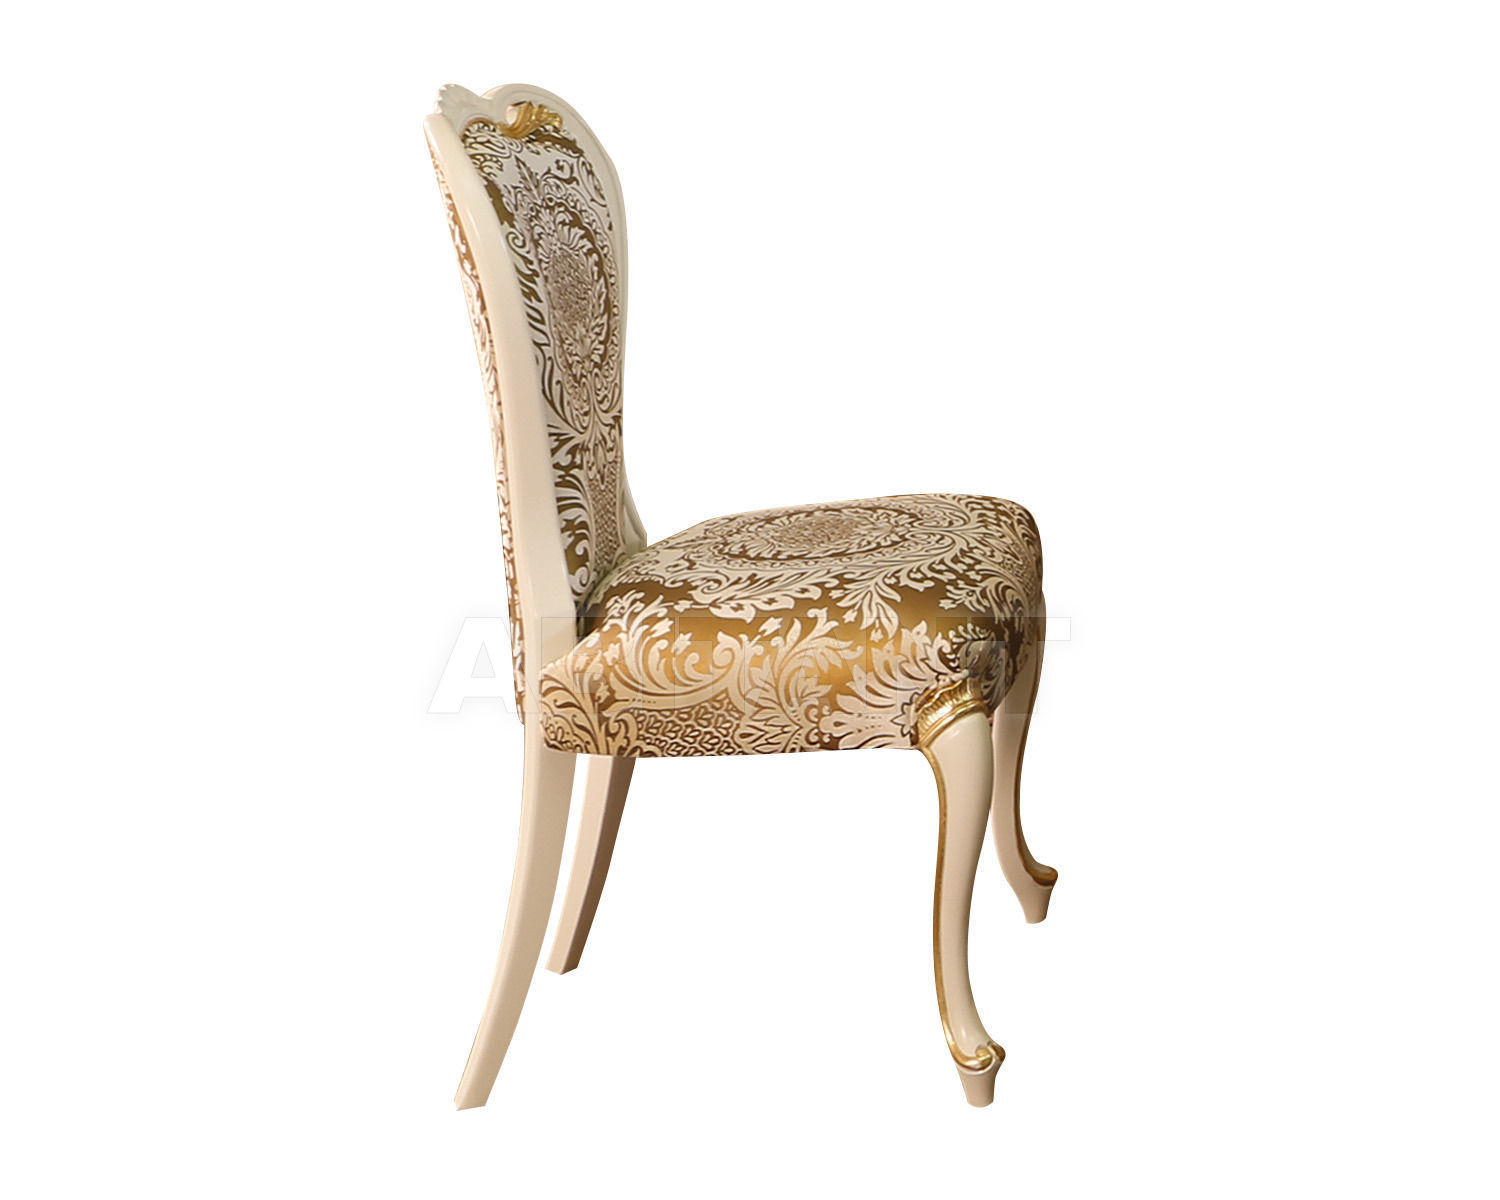 Купить Стул BELLAGIO Boghi Arredamenti 2011-2012 718 SEDIA/CHAIR